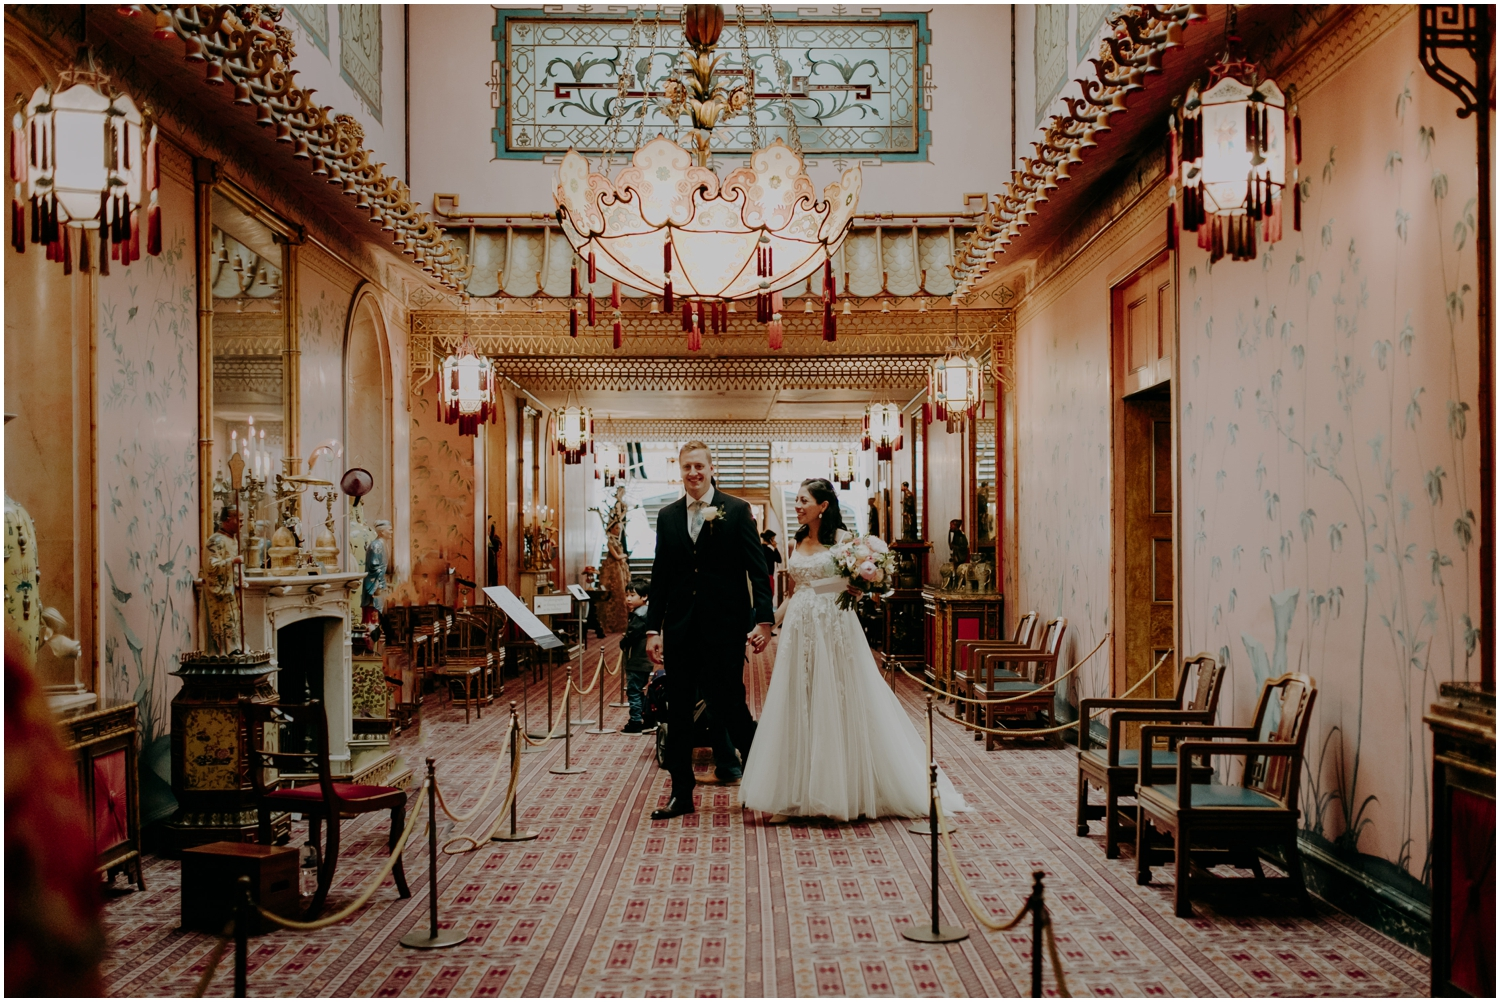 royal pavilion brighton wedding49.jpg